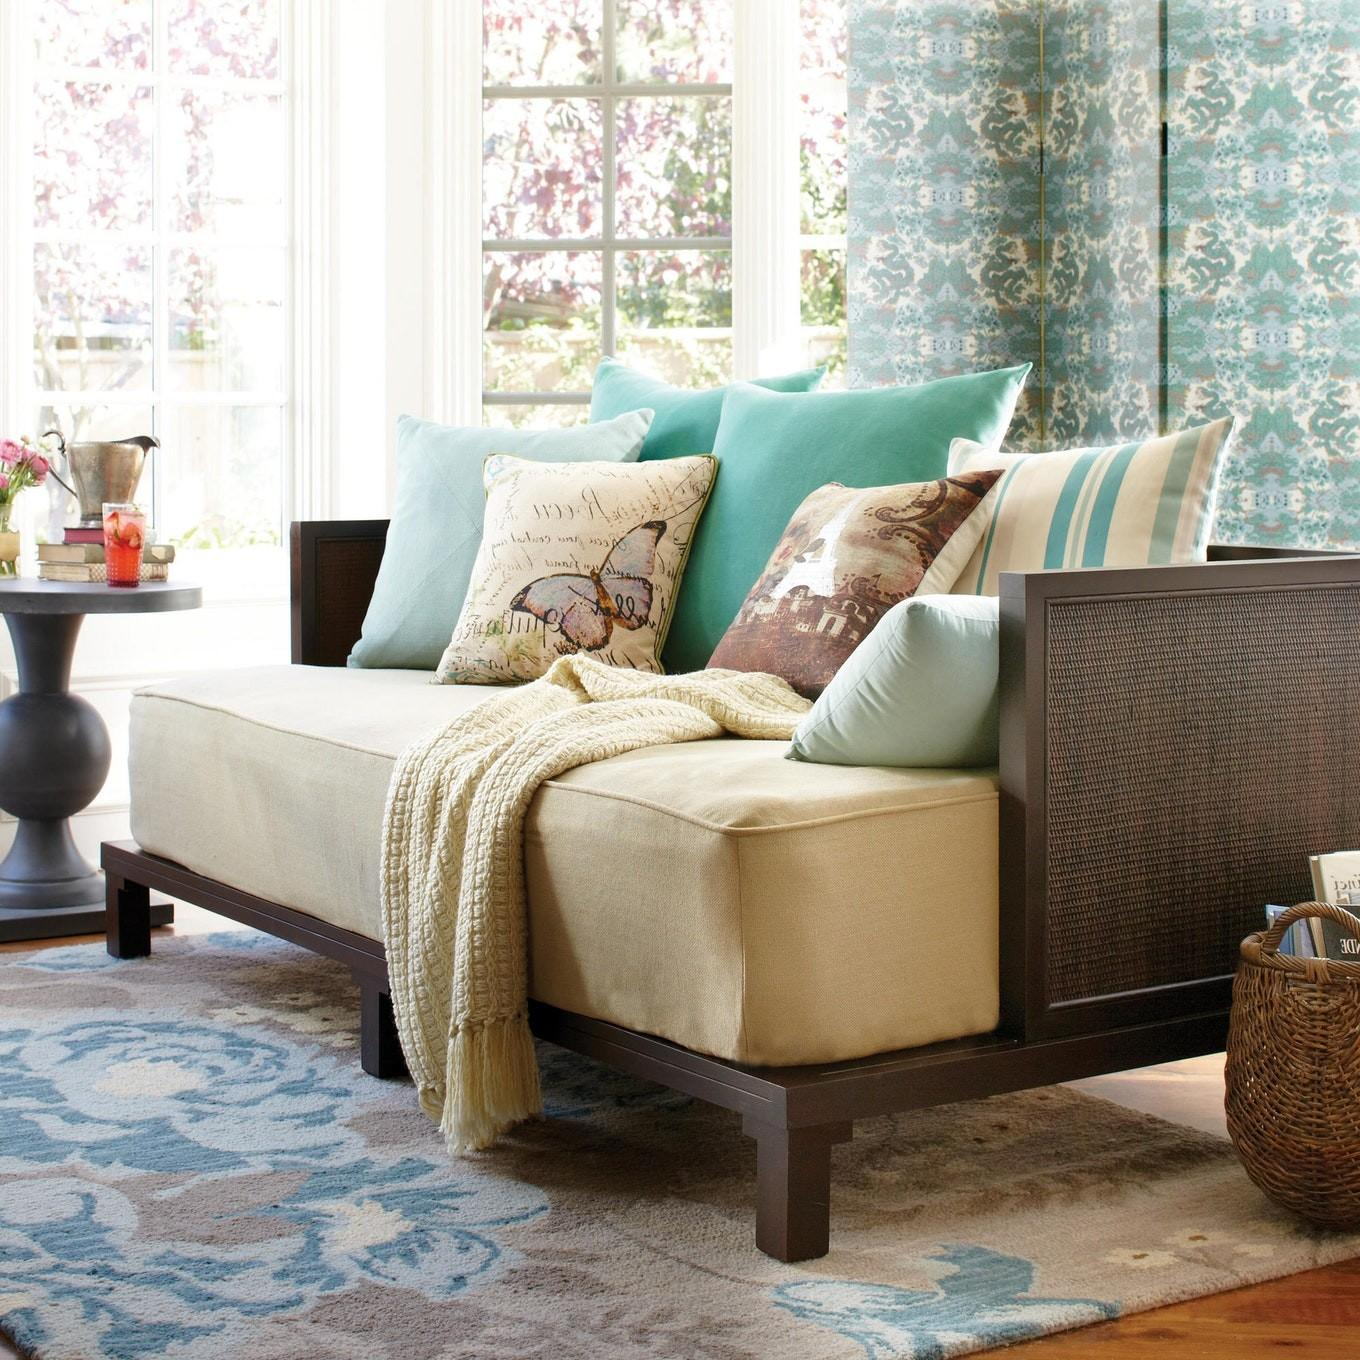 Shabby Chic Living Room Small Ideas Daybed Home